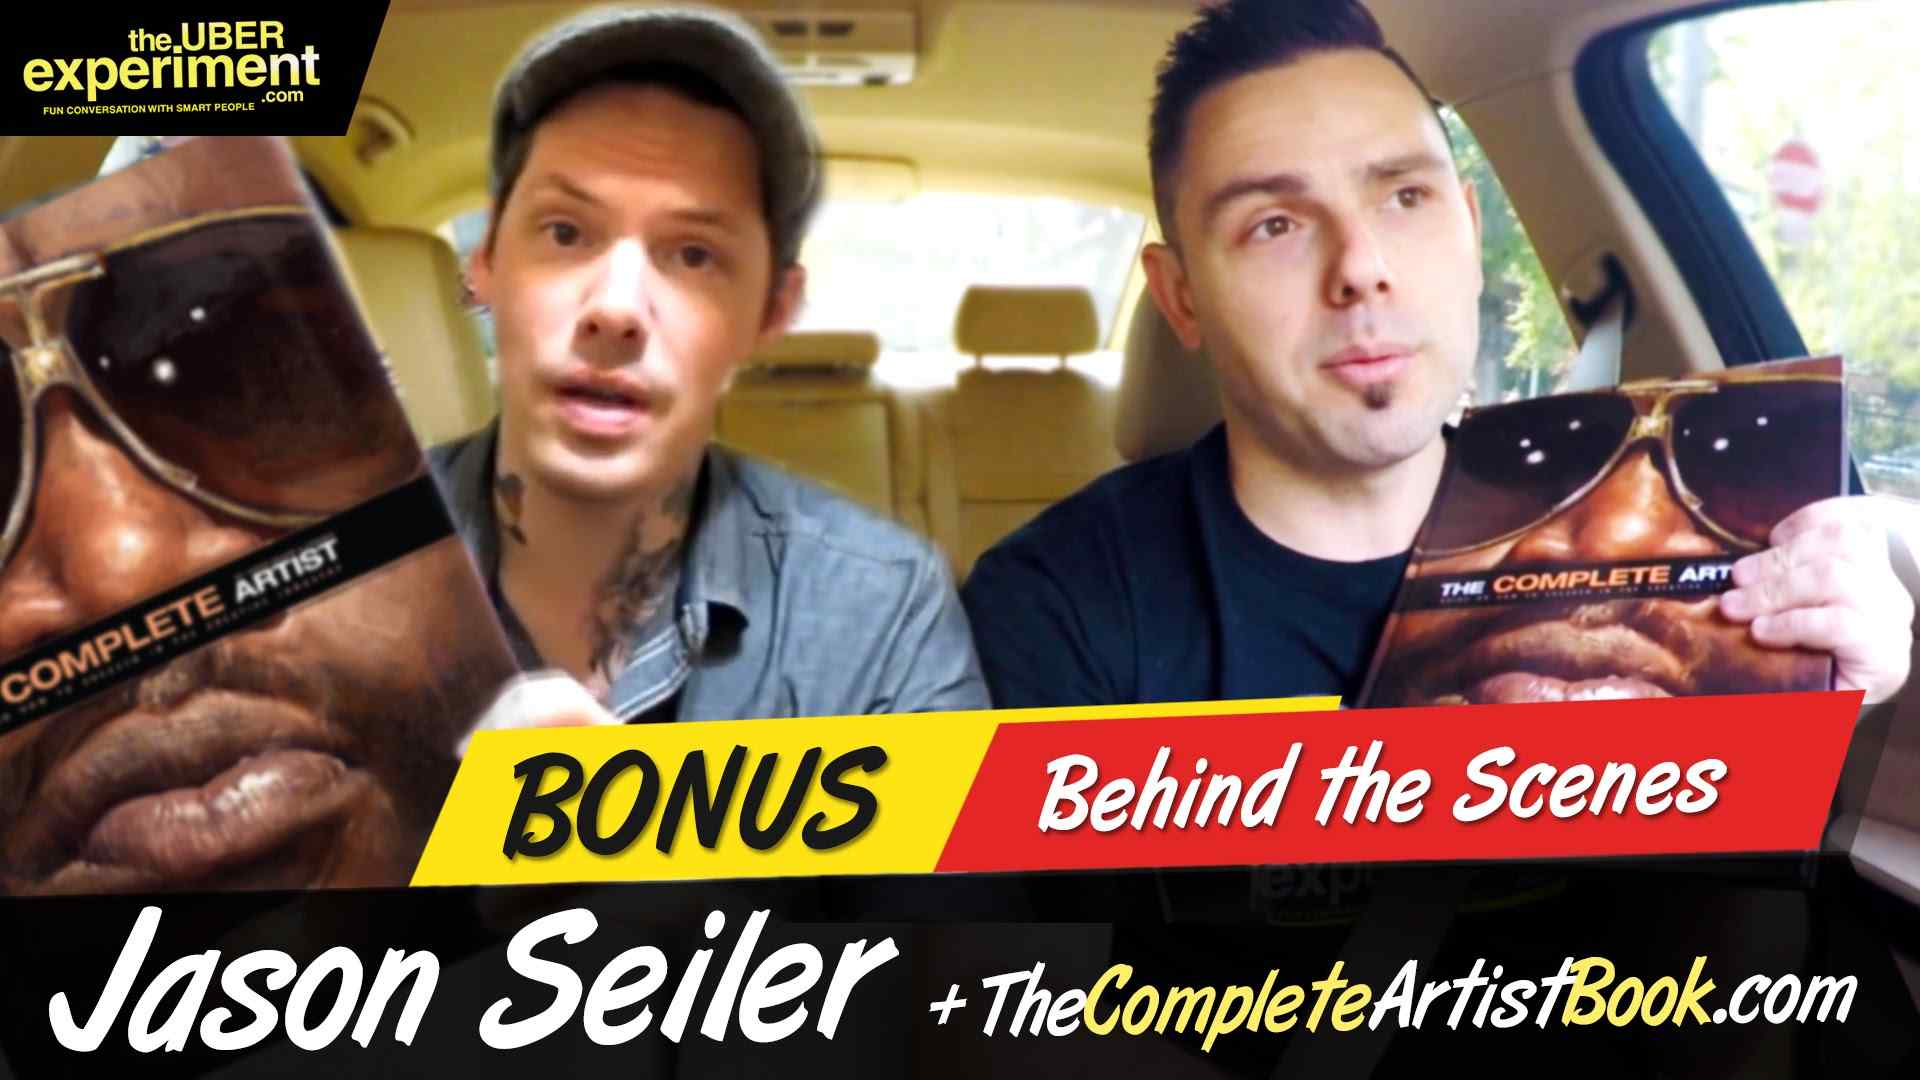 JASON SEILER's Complete Artist Book - Guide To Success on The Uber Experiment Reality Talk Show